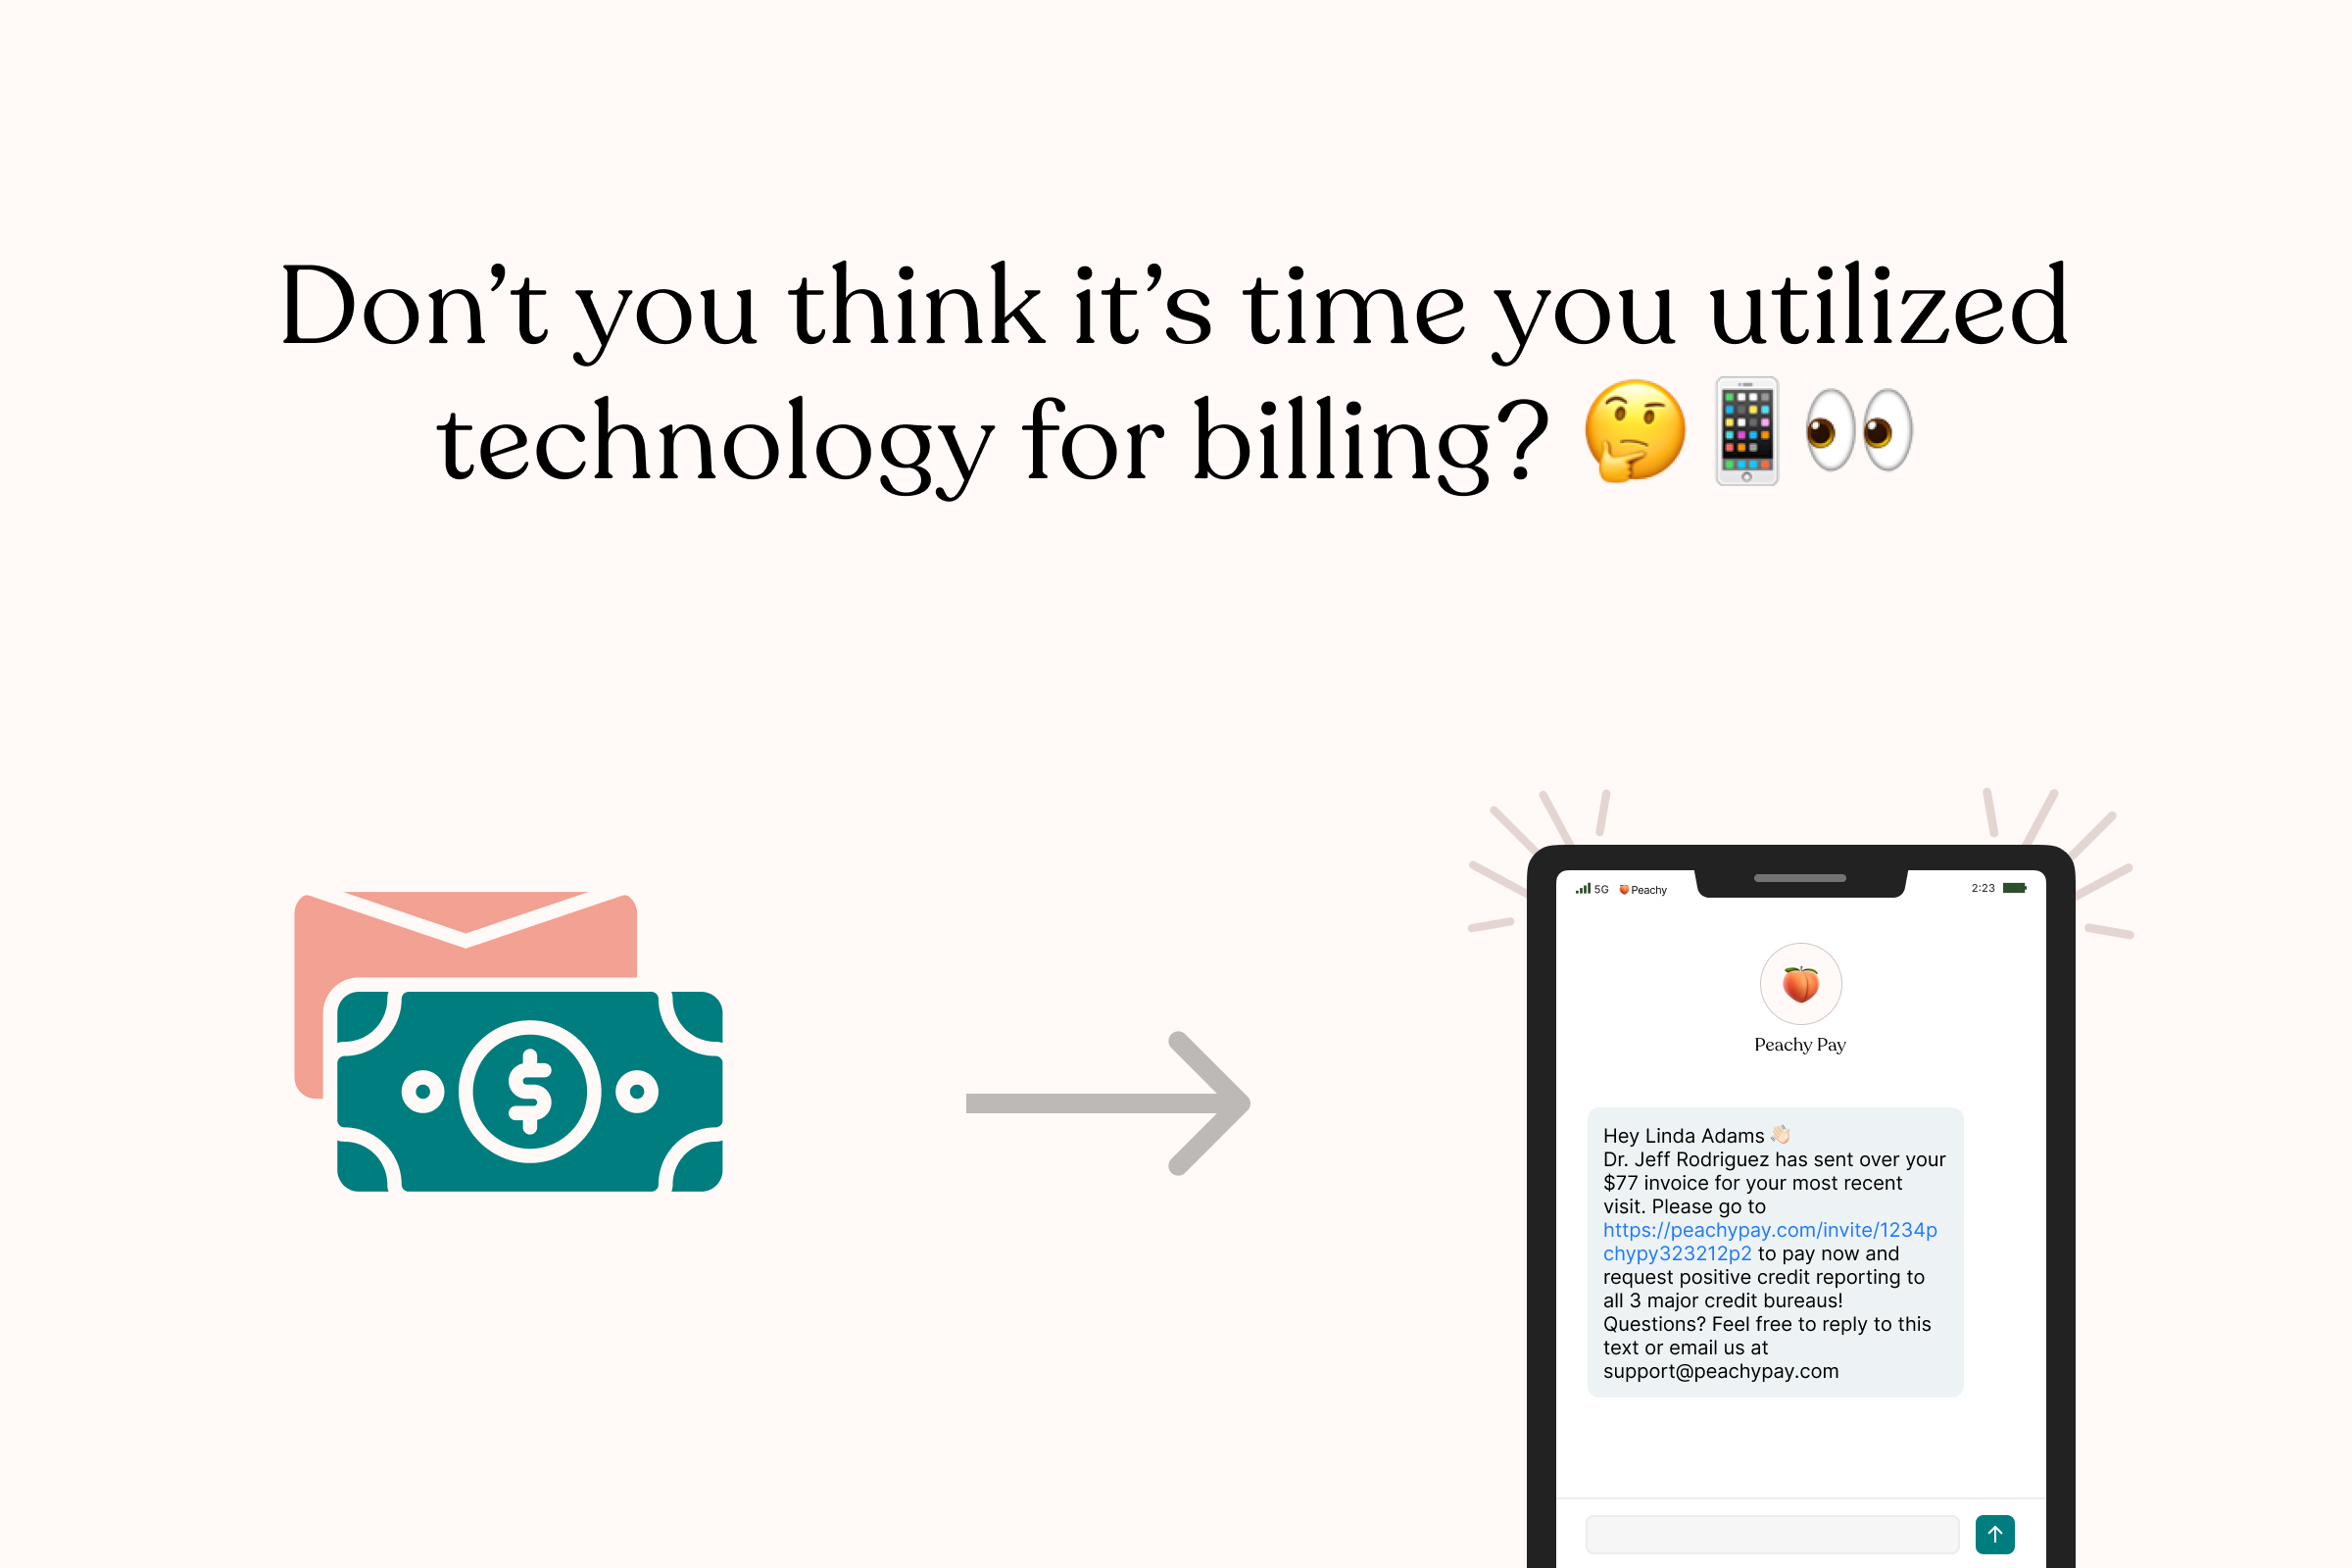 Don't you think it's time you utilized technology for billing?